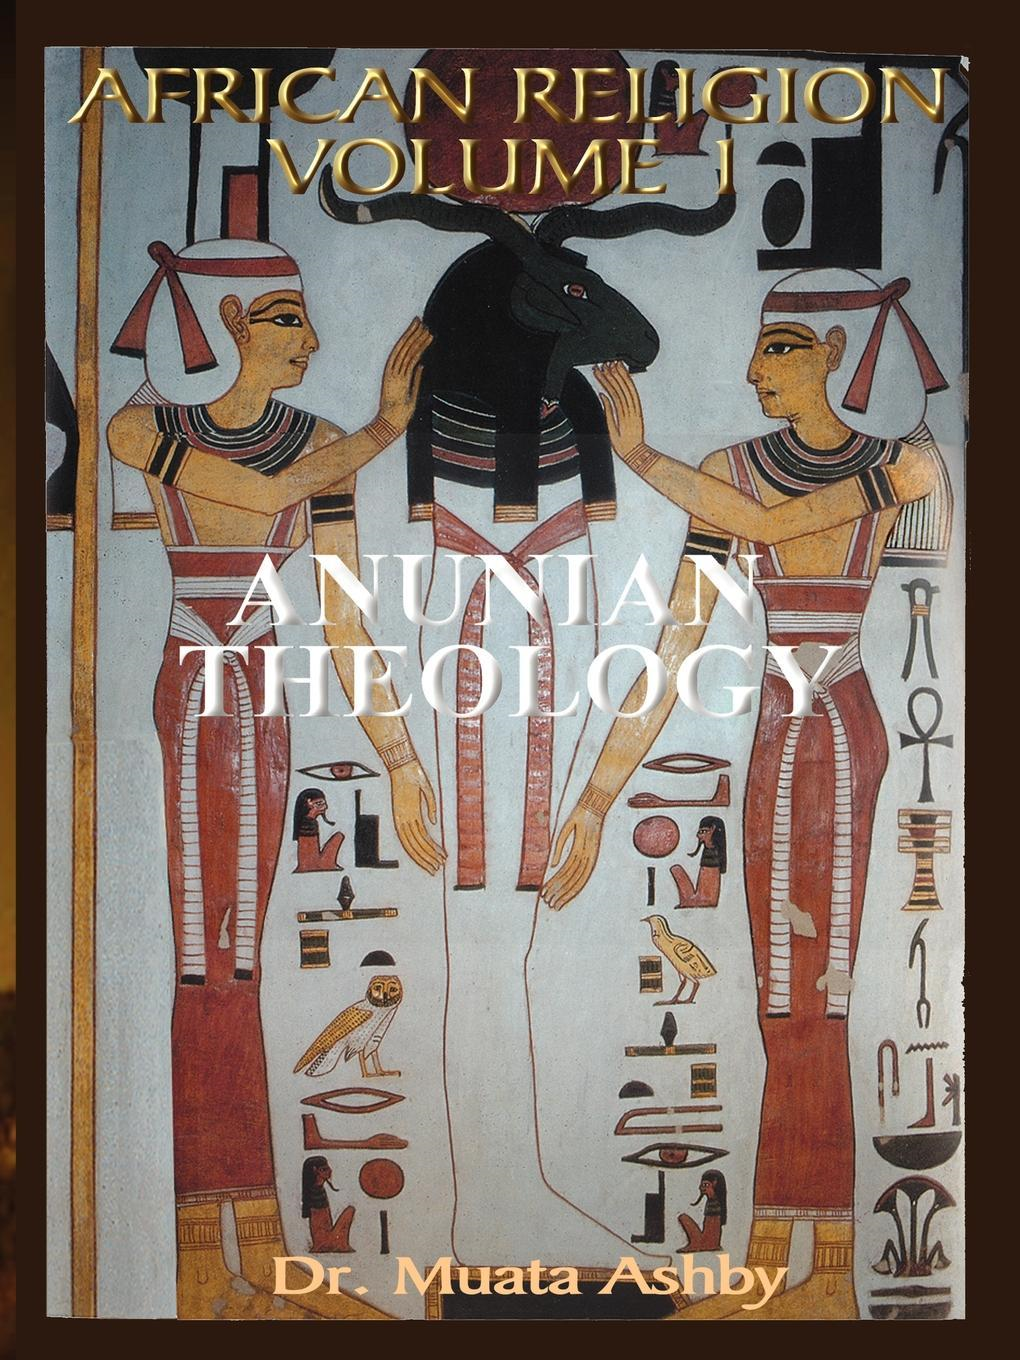 Muata Ashby - African Religion VOL. 1- ANUNIAN THEOLOGY THE MYSTERIES OF RA The Philosophy of Anu and The Mystical Teachings of The Ancient Egyptian  Creation Myth